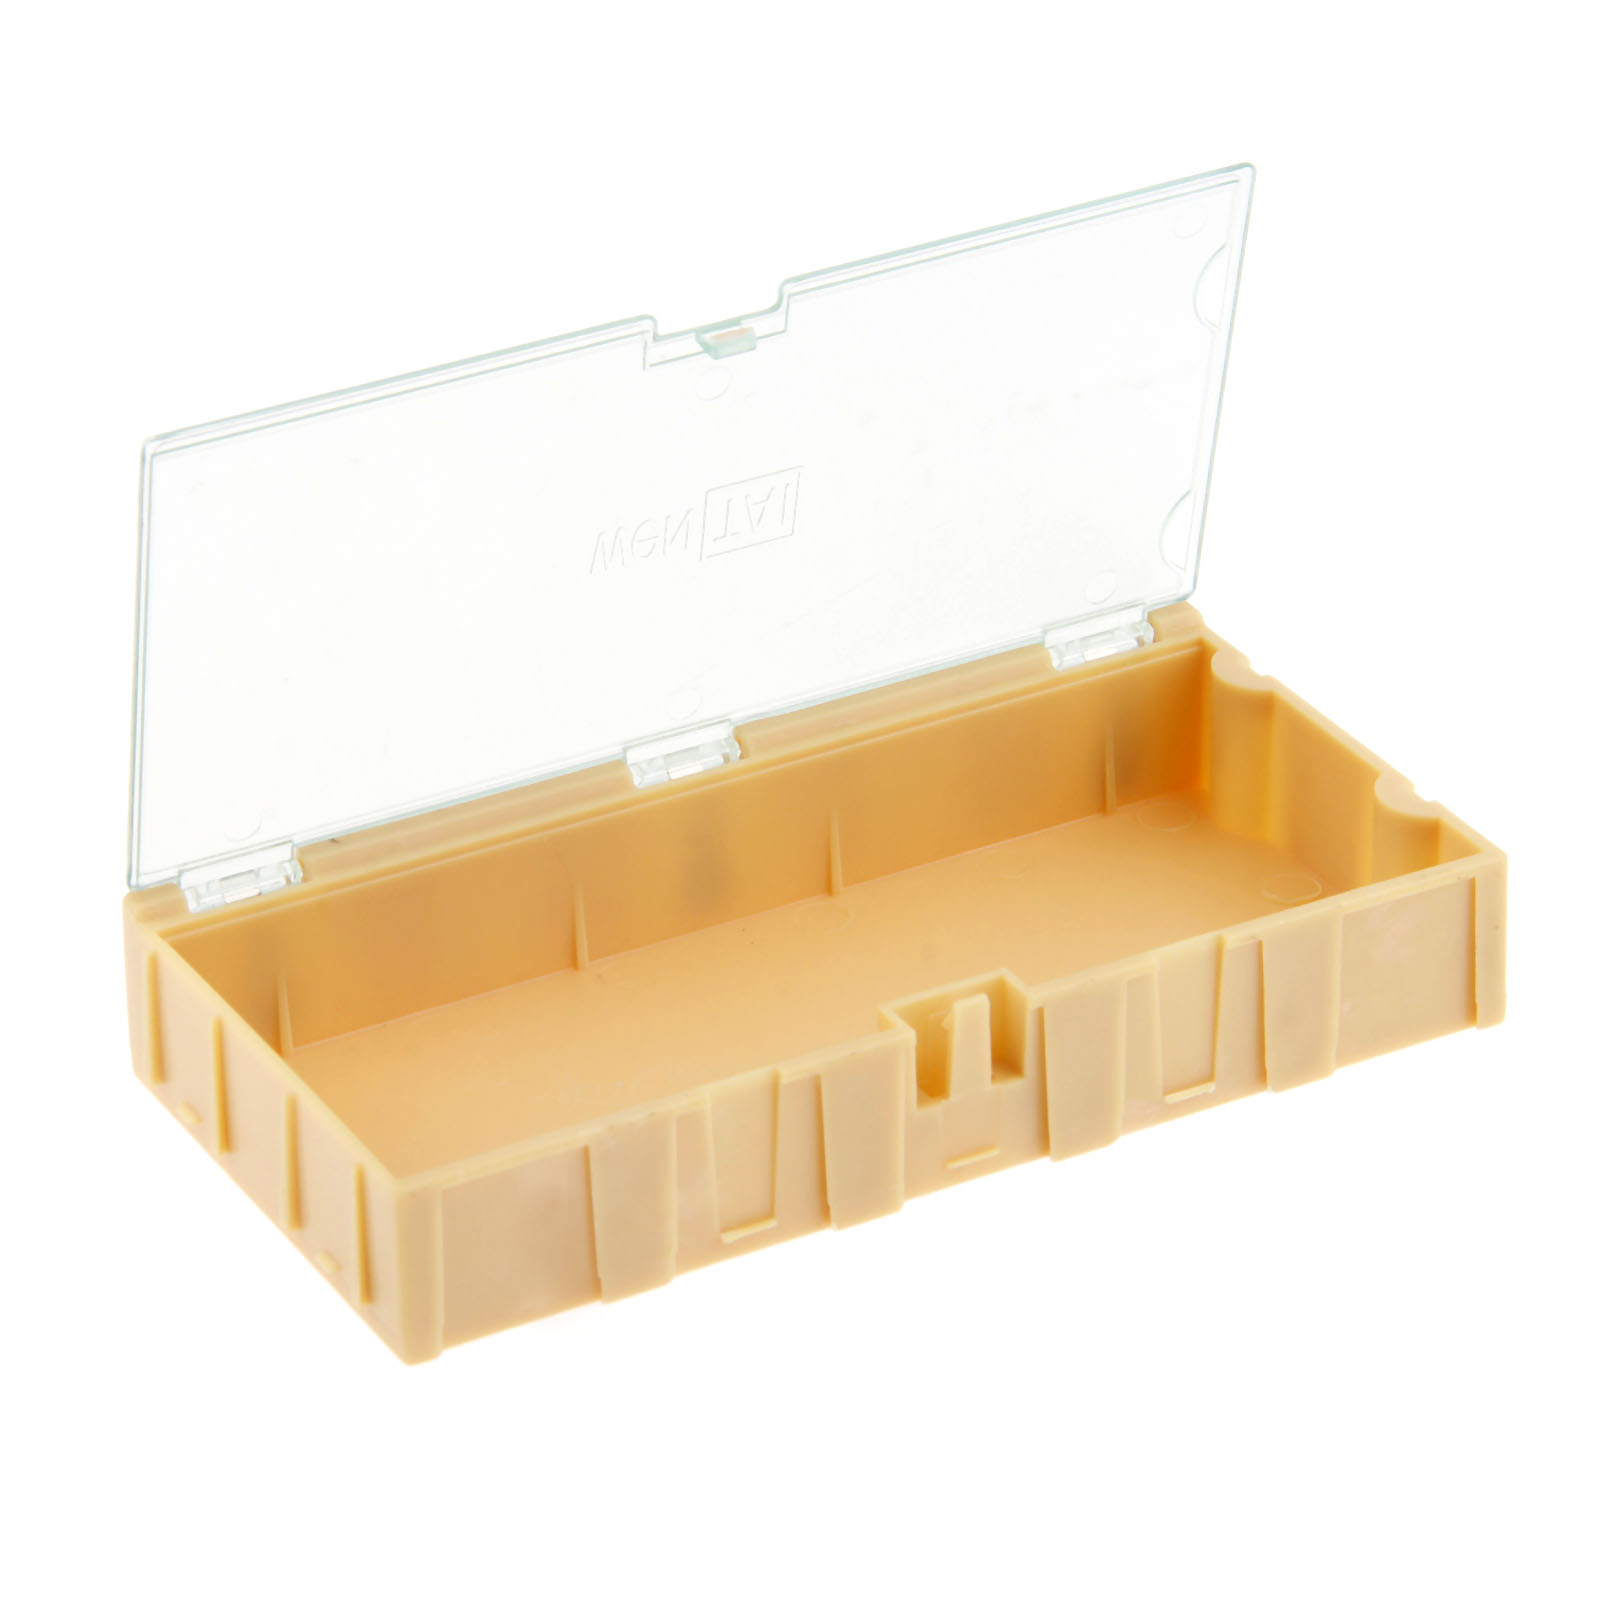 DRELD 1Pc 4# Yellow Component Storage Box Square IC Components Boxes SMT SMD Combination Boxes Tool Plastic Case 125*63*21mm